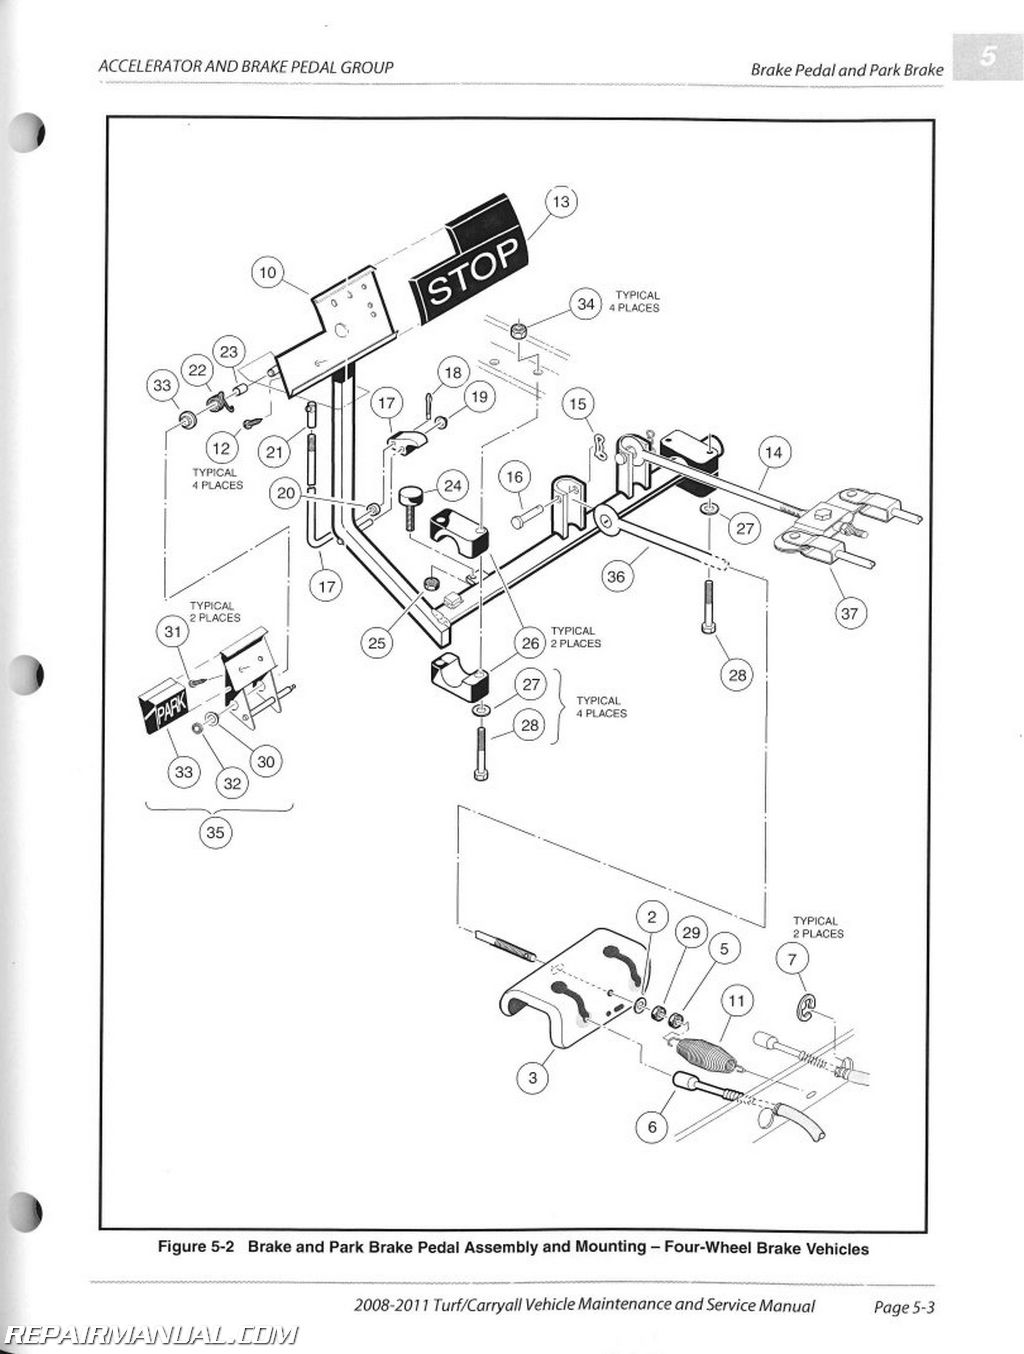 Club Car Turf 1 Wiring Diagram Books Of Carryall 2008 2011 2 6